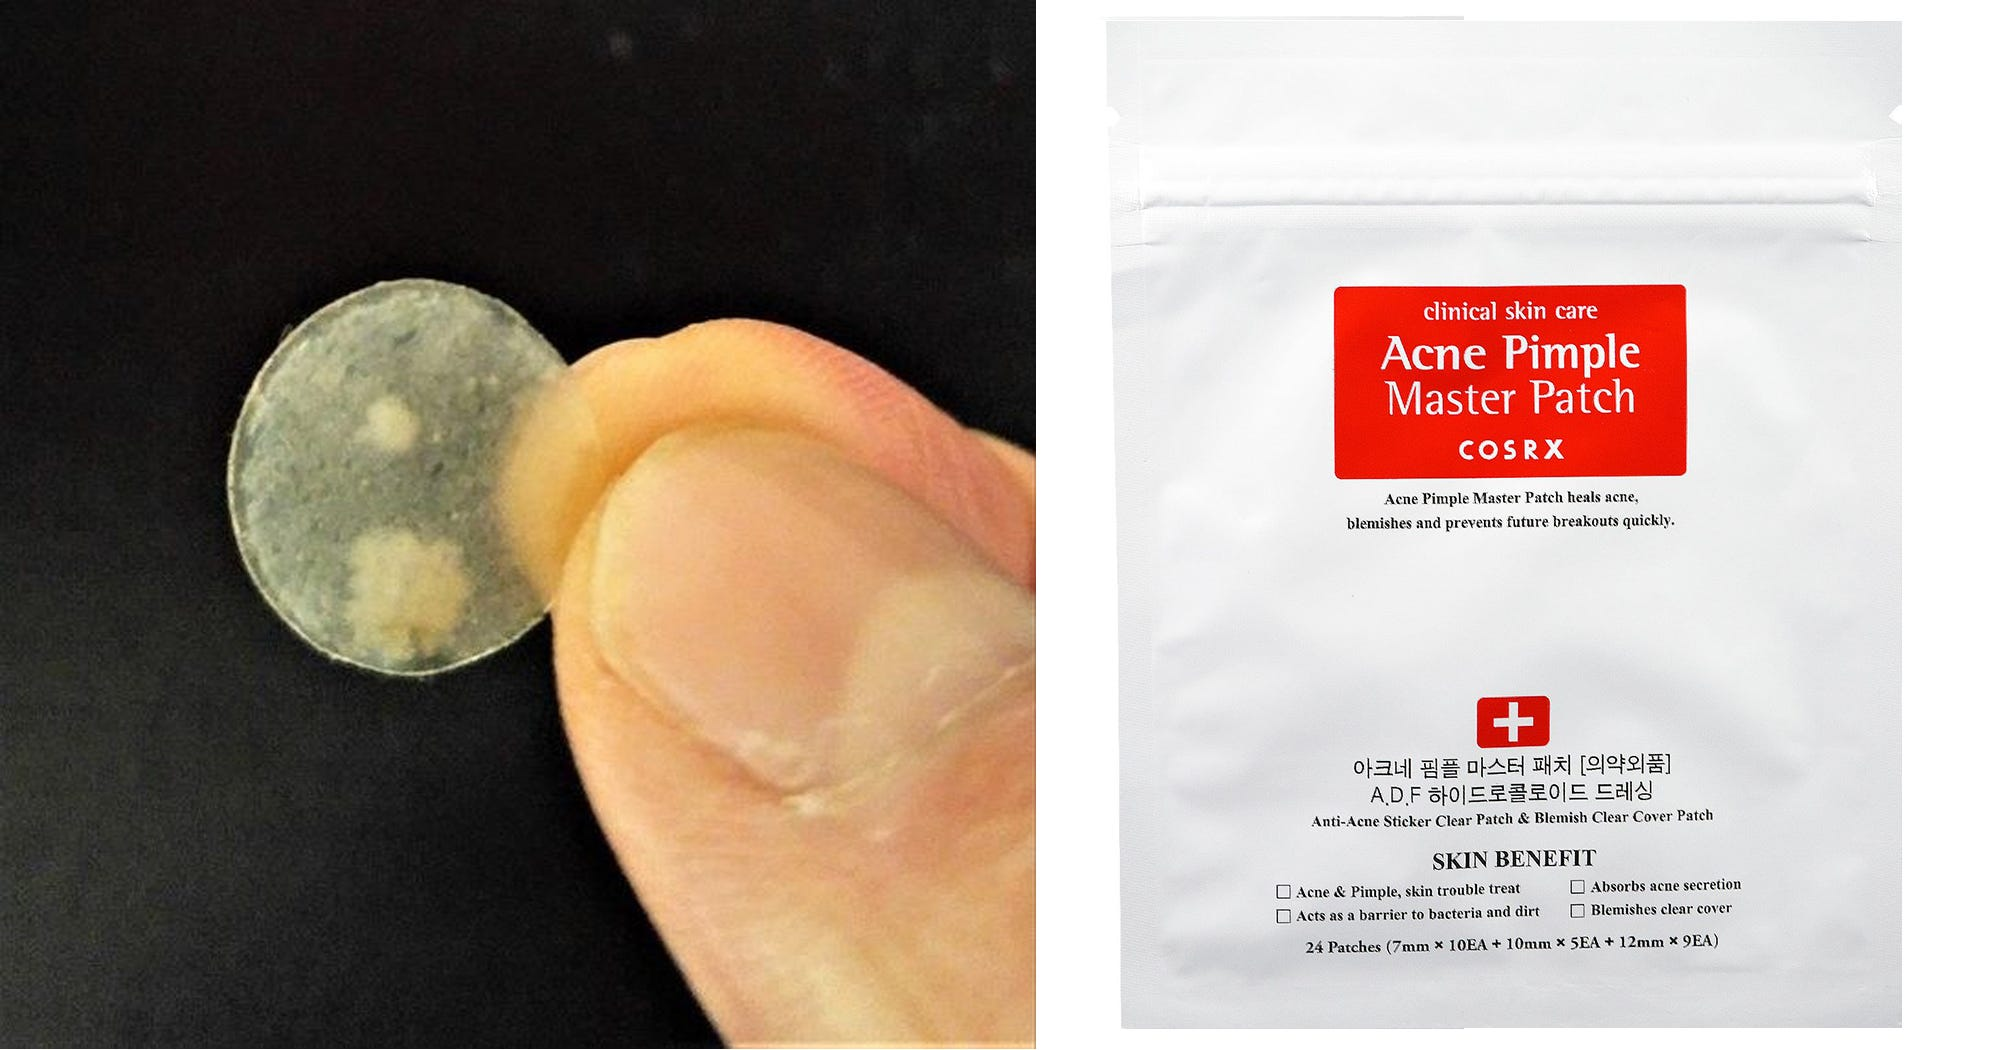 acne stickat